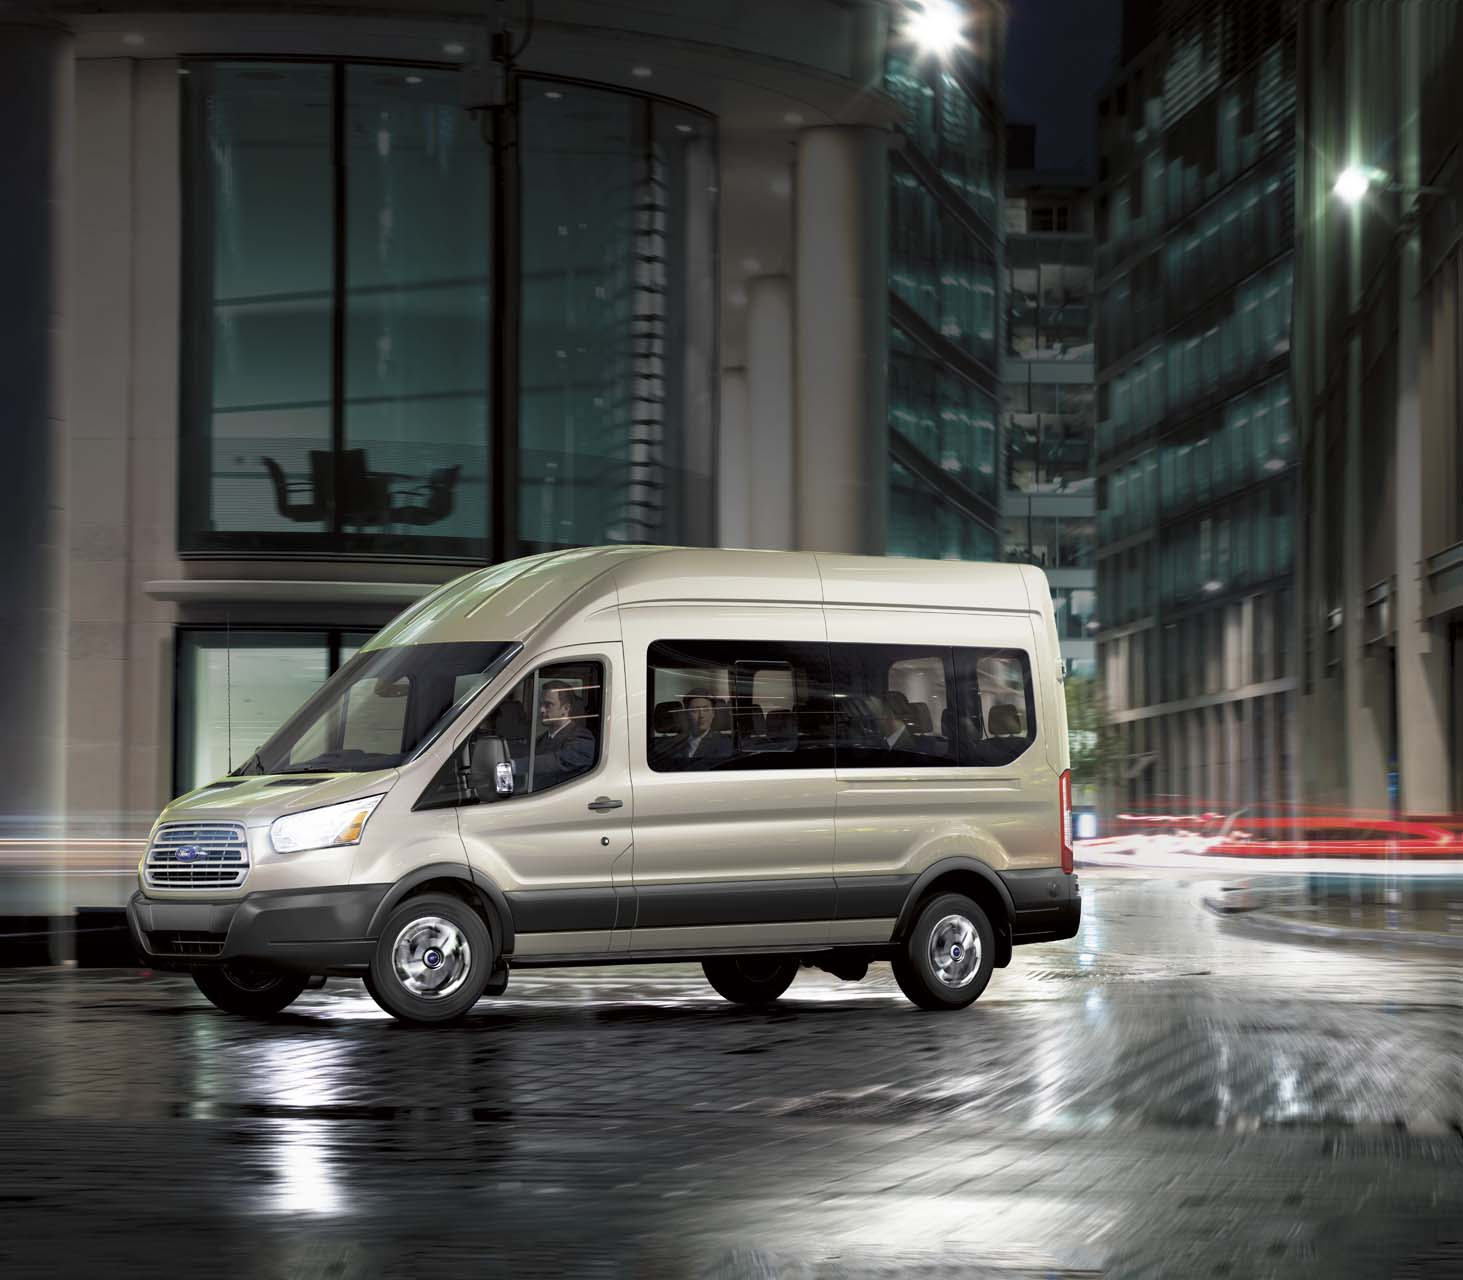 2019 Ford Transit Connect Passenger Suspension: 2019 Ford Transit Passenger Wagon Review, Ratings, Specs